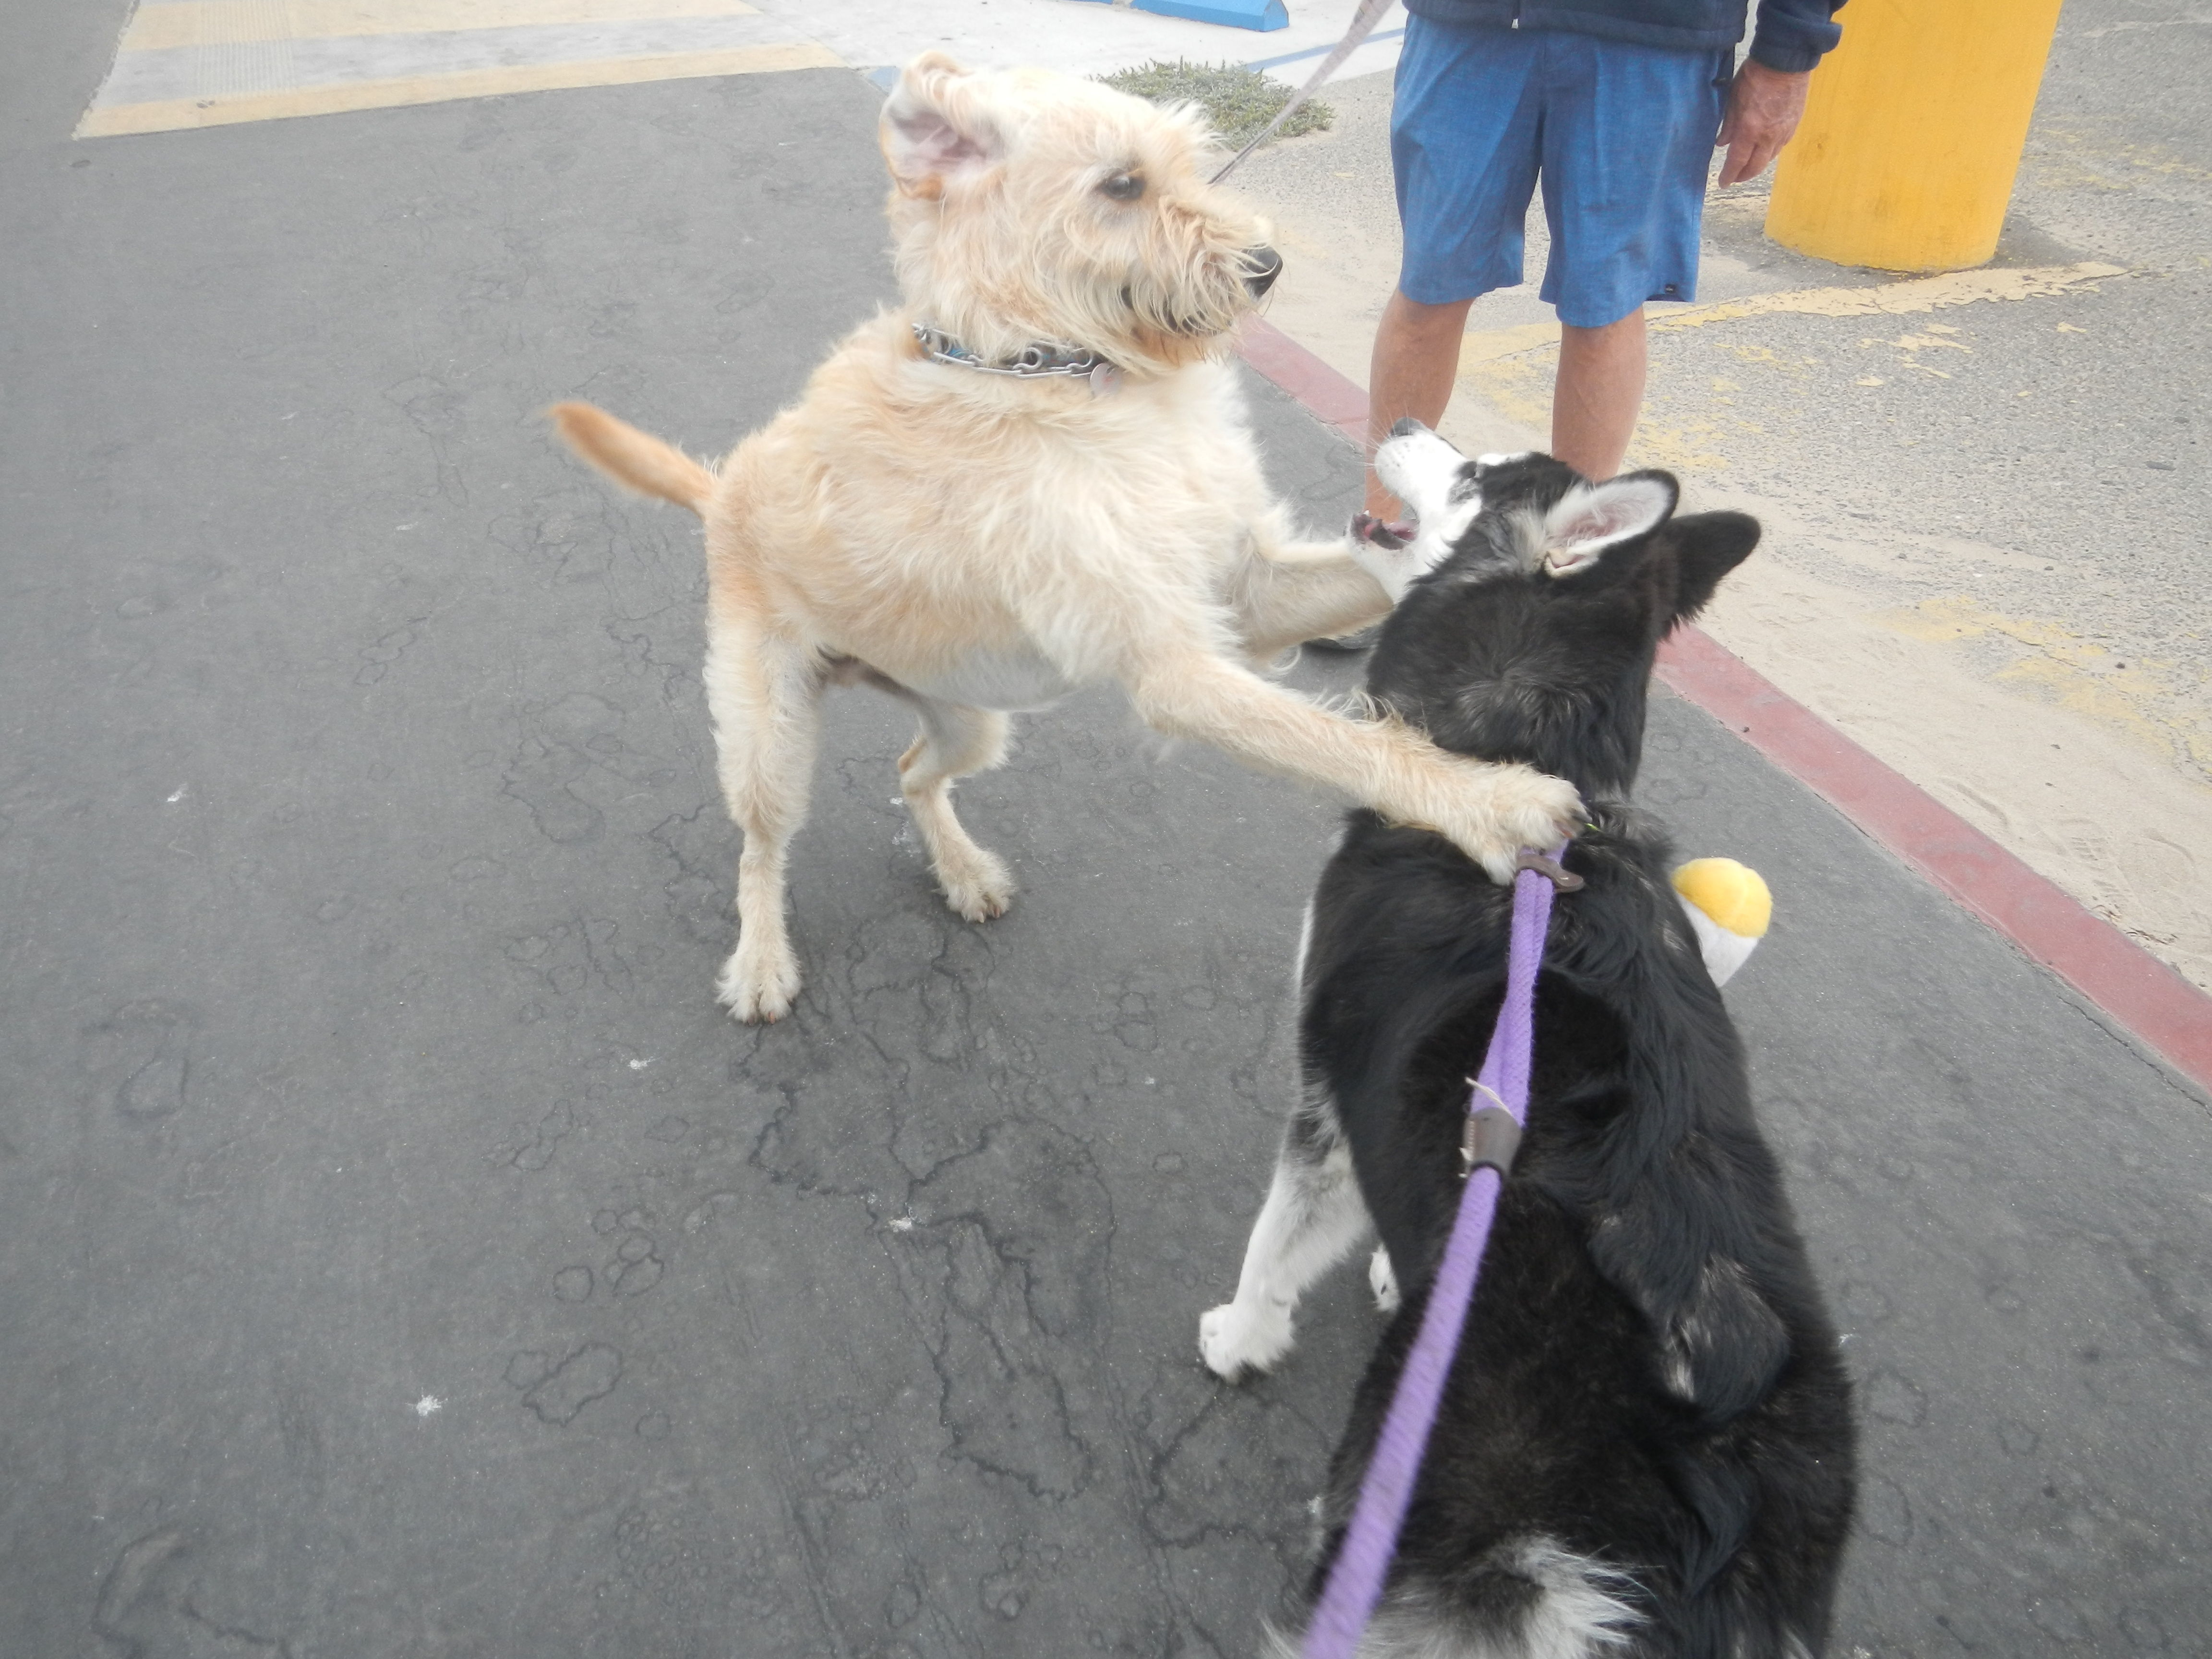 Kay found several dogs and excuses to stop and play along the way